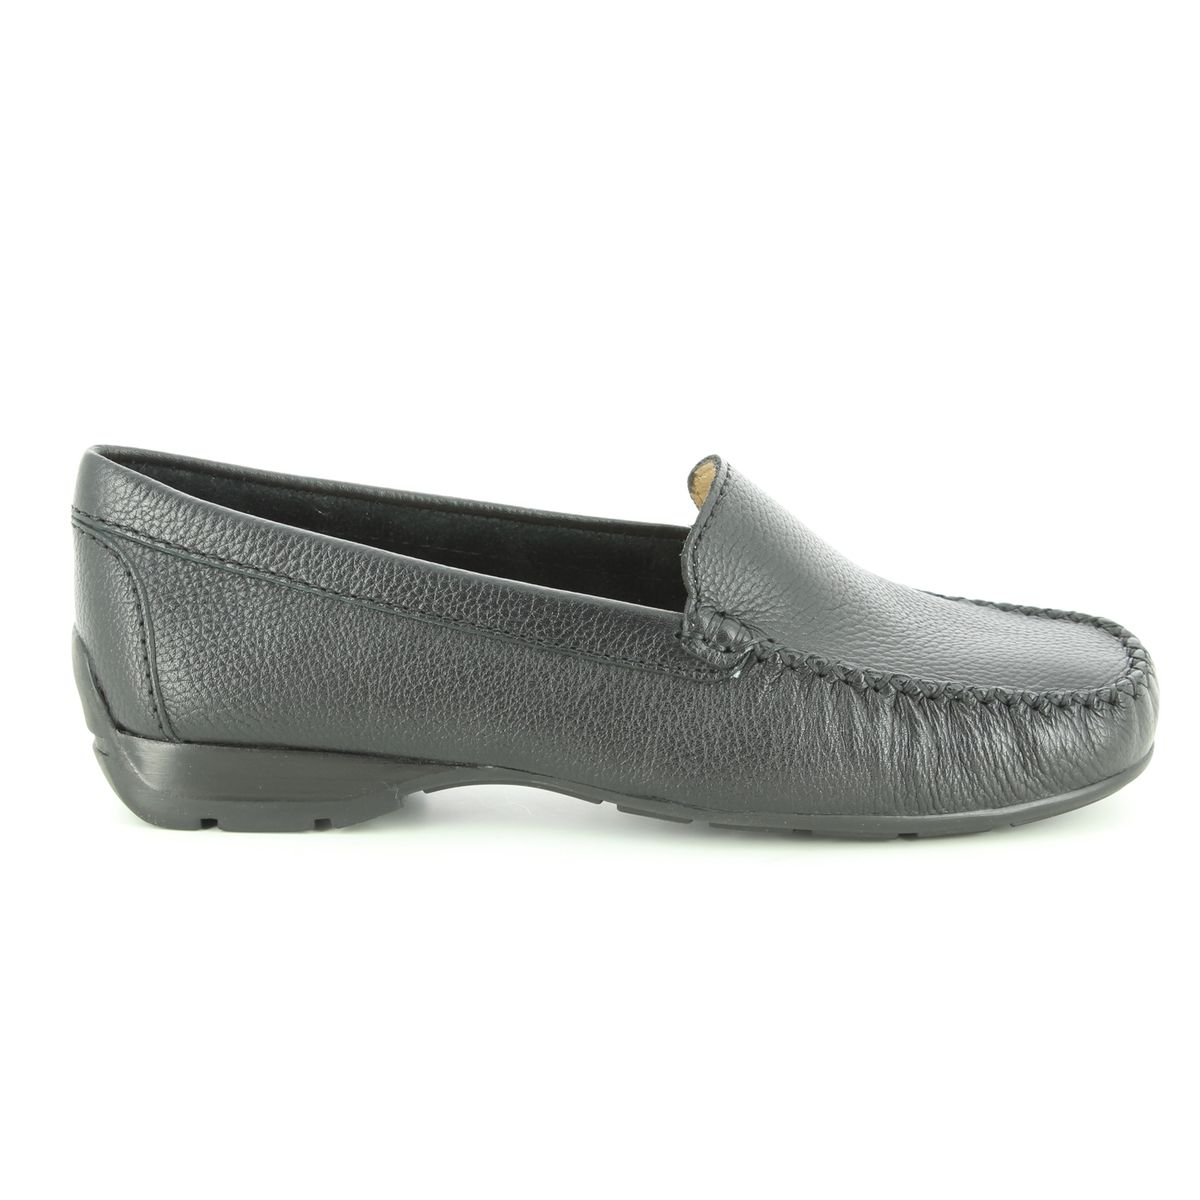 ac52f059722 Ambition Loafers - Black leather - 40539 30 SUNDAY WIDE FIT